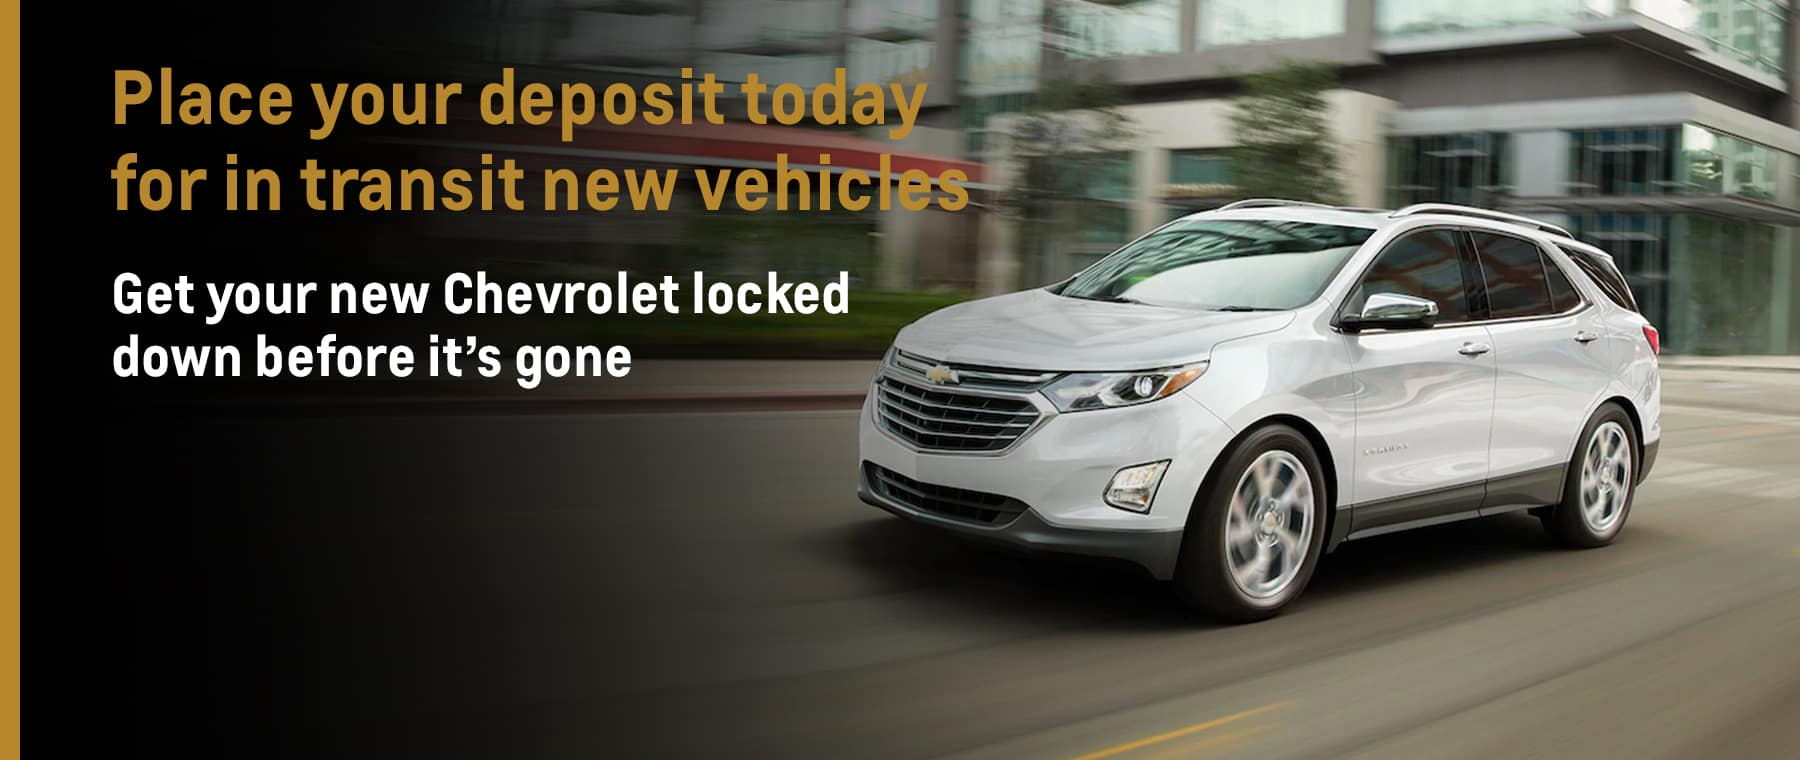 Place your deposit today for in transit new vehicles